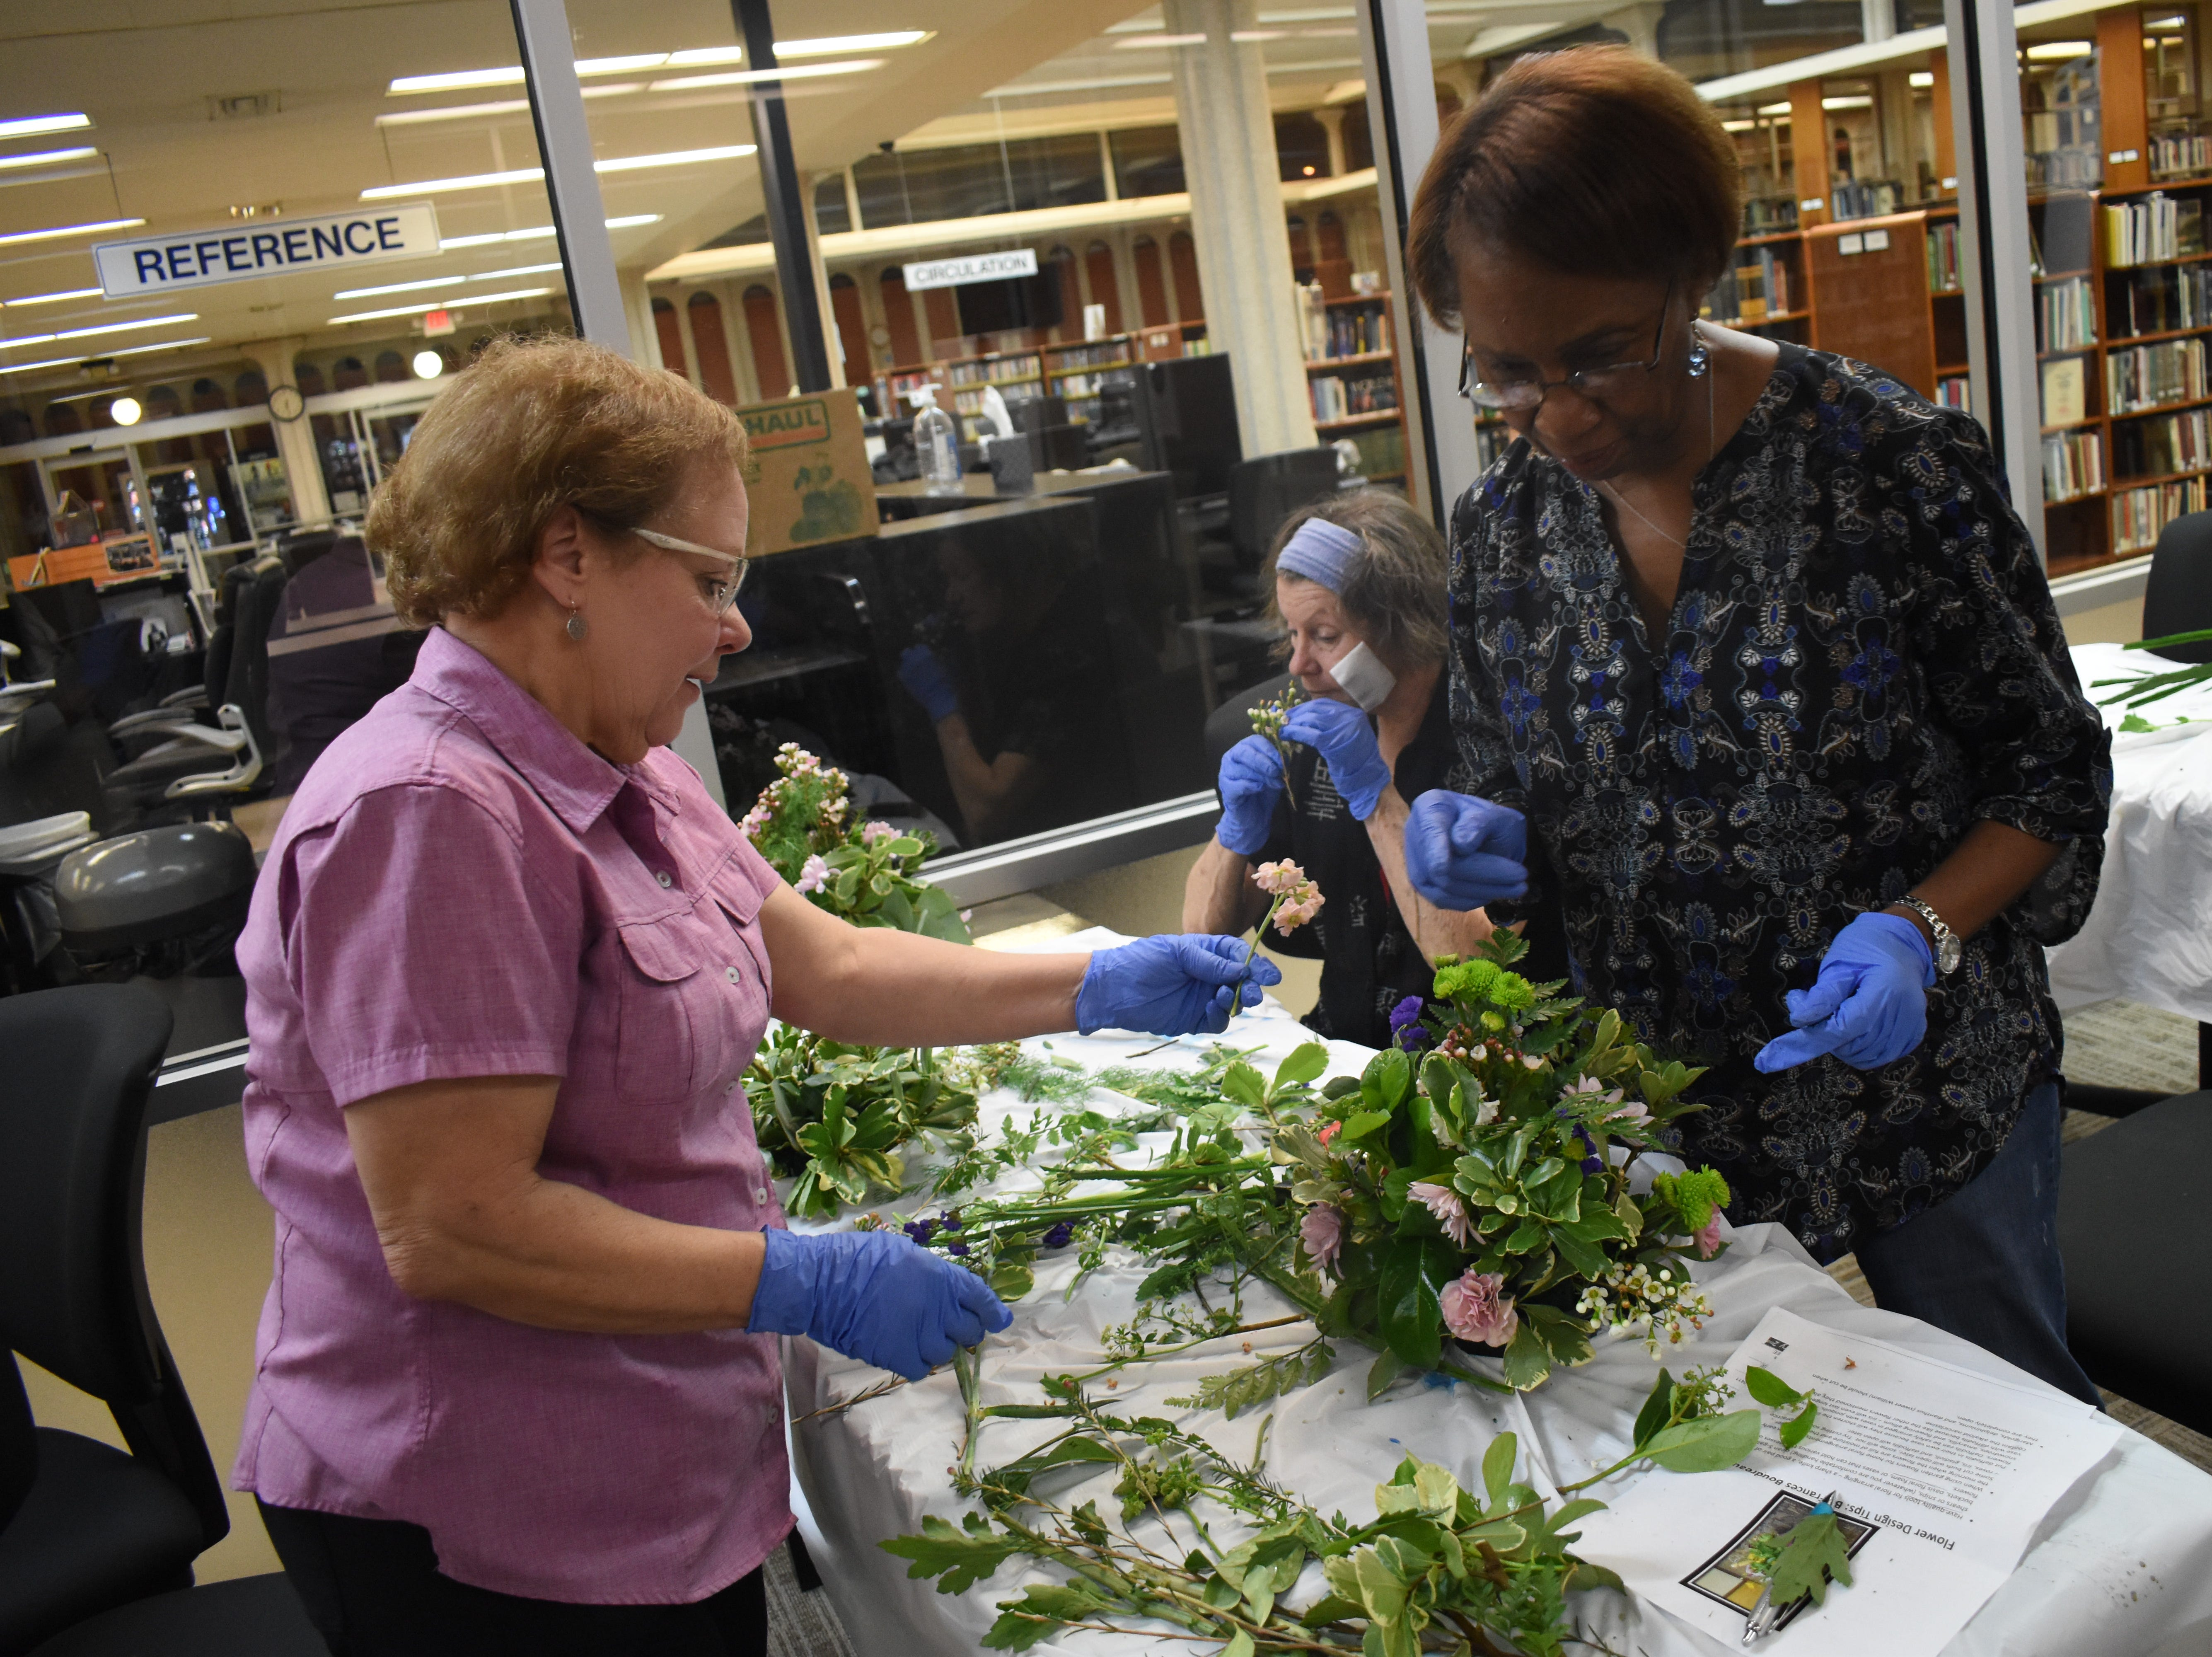 "Frances Boudreaux (left), a licensed florist, helps Ameil Washington as she makes a flower arrangement in a class, ""Flowers For Your Sweetheart,"" taught by Boudreaux at the Main Library of the Rapides Parish Library Wednesday, Feb. 6, 2019. Some of the tips Boudreaux told participants was to try various foliage to see what works best for them. She recommended cutting garden flowers in the morning when flowers are full of moisture and the are is cooler. Flowers such as roses, iris, gladioli can be cut as buds and may open later. Marigolds, delphiniums and dianthus or sweet William, must be cut with they are open. Some of the common foliage that were used in the arrangements that can be found in Central Louisiana are pittosporum, either variegated or solid green; baker's fern or leather leaf; sweet viburnum, sweet olive, rosemary, ginger, evergreen boughs, holly, aspidistra or iron plant, and herbs such as rosemary, lavender, mint, basil and lemon balm. 